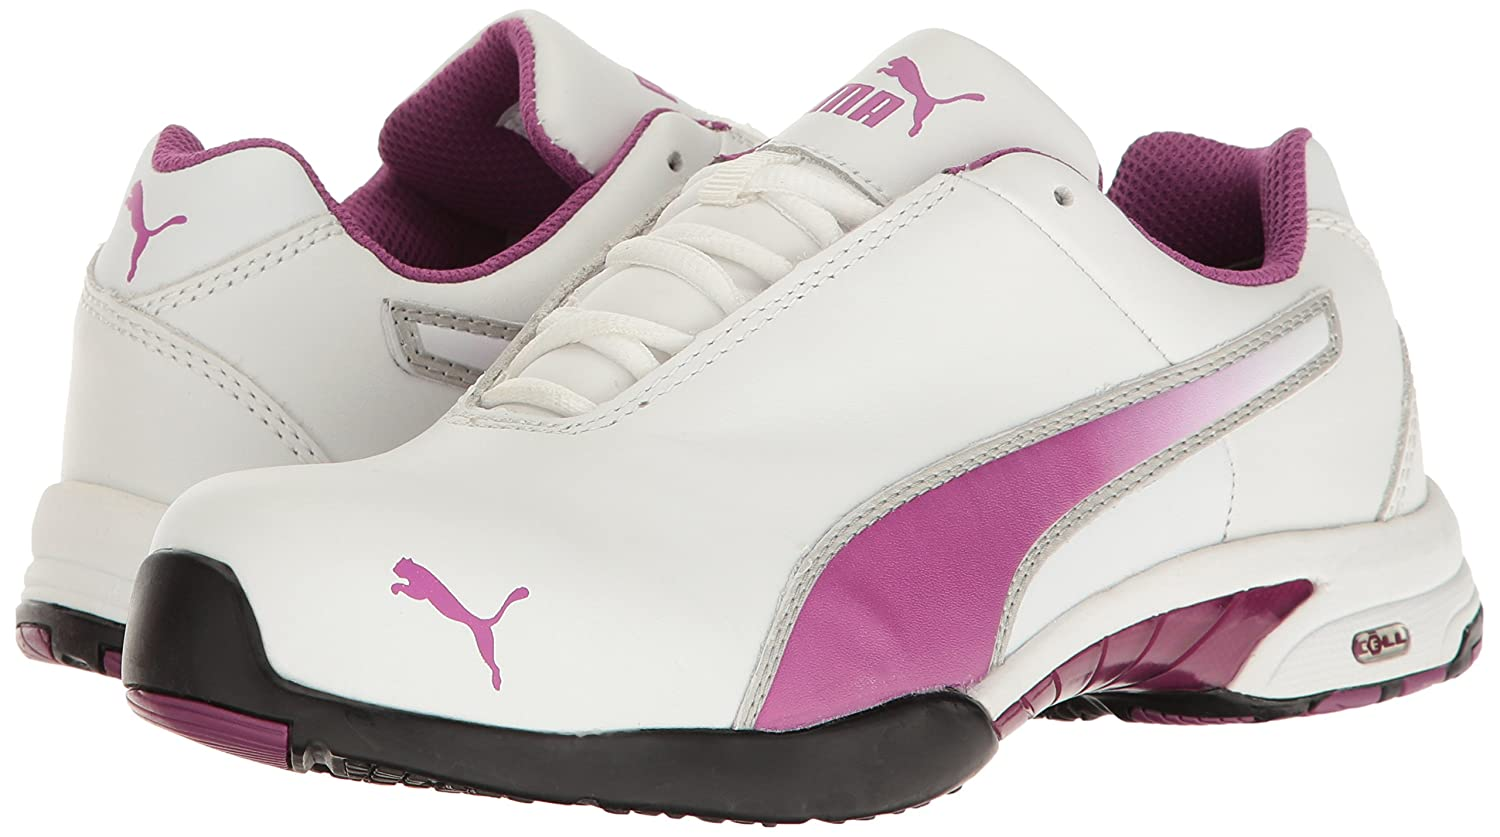 PUMA Safety Womens Velocity White SD B01MSX2CG2 8.5 B(M) US|White